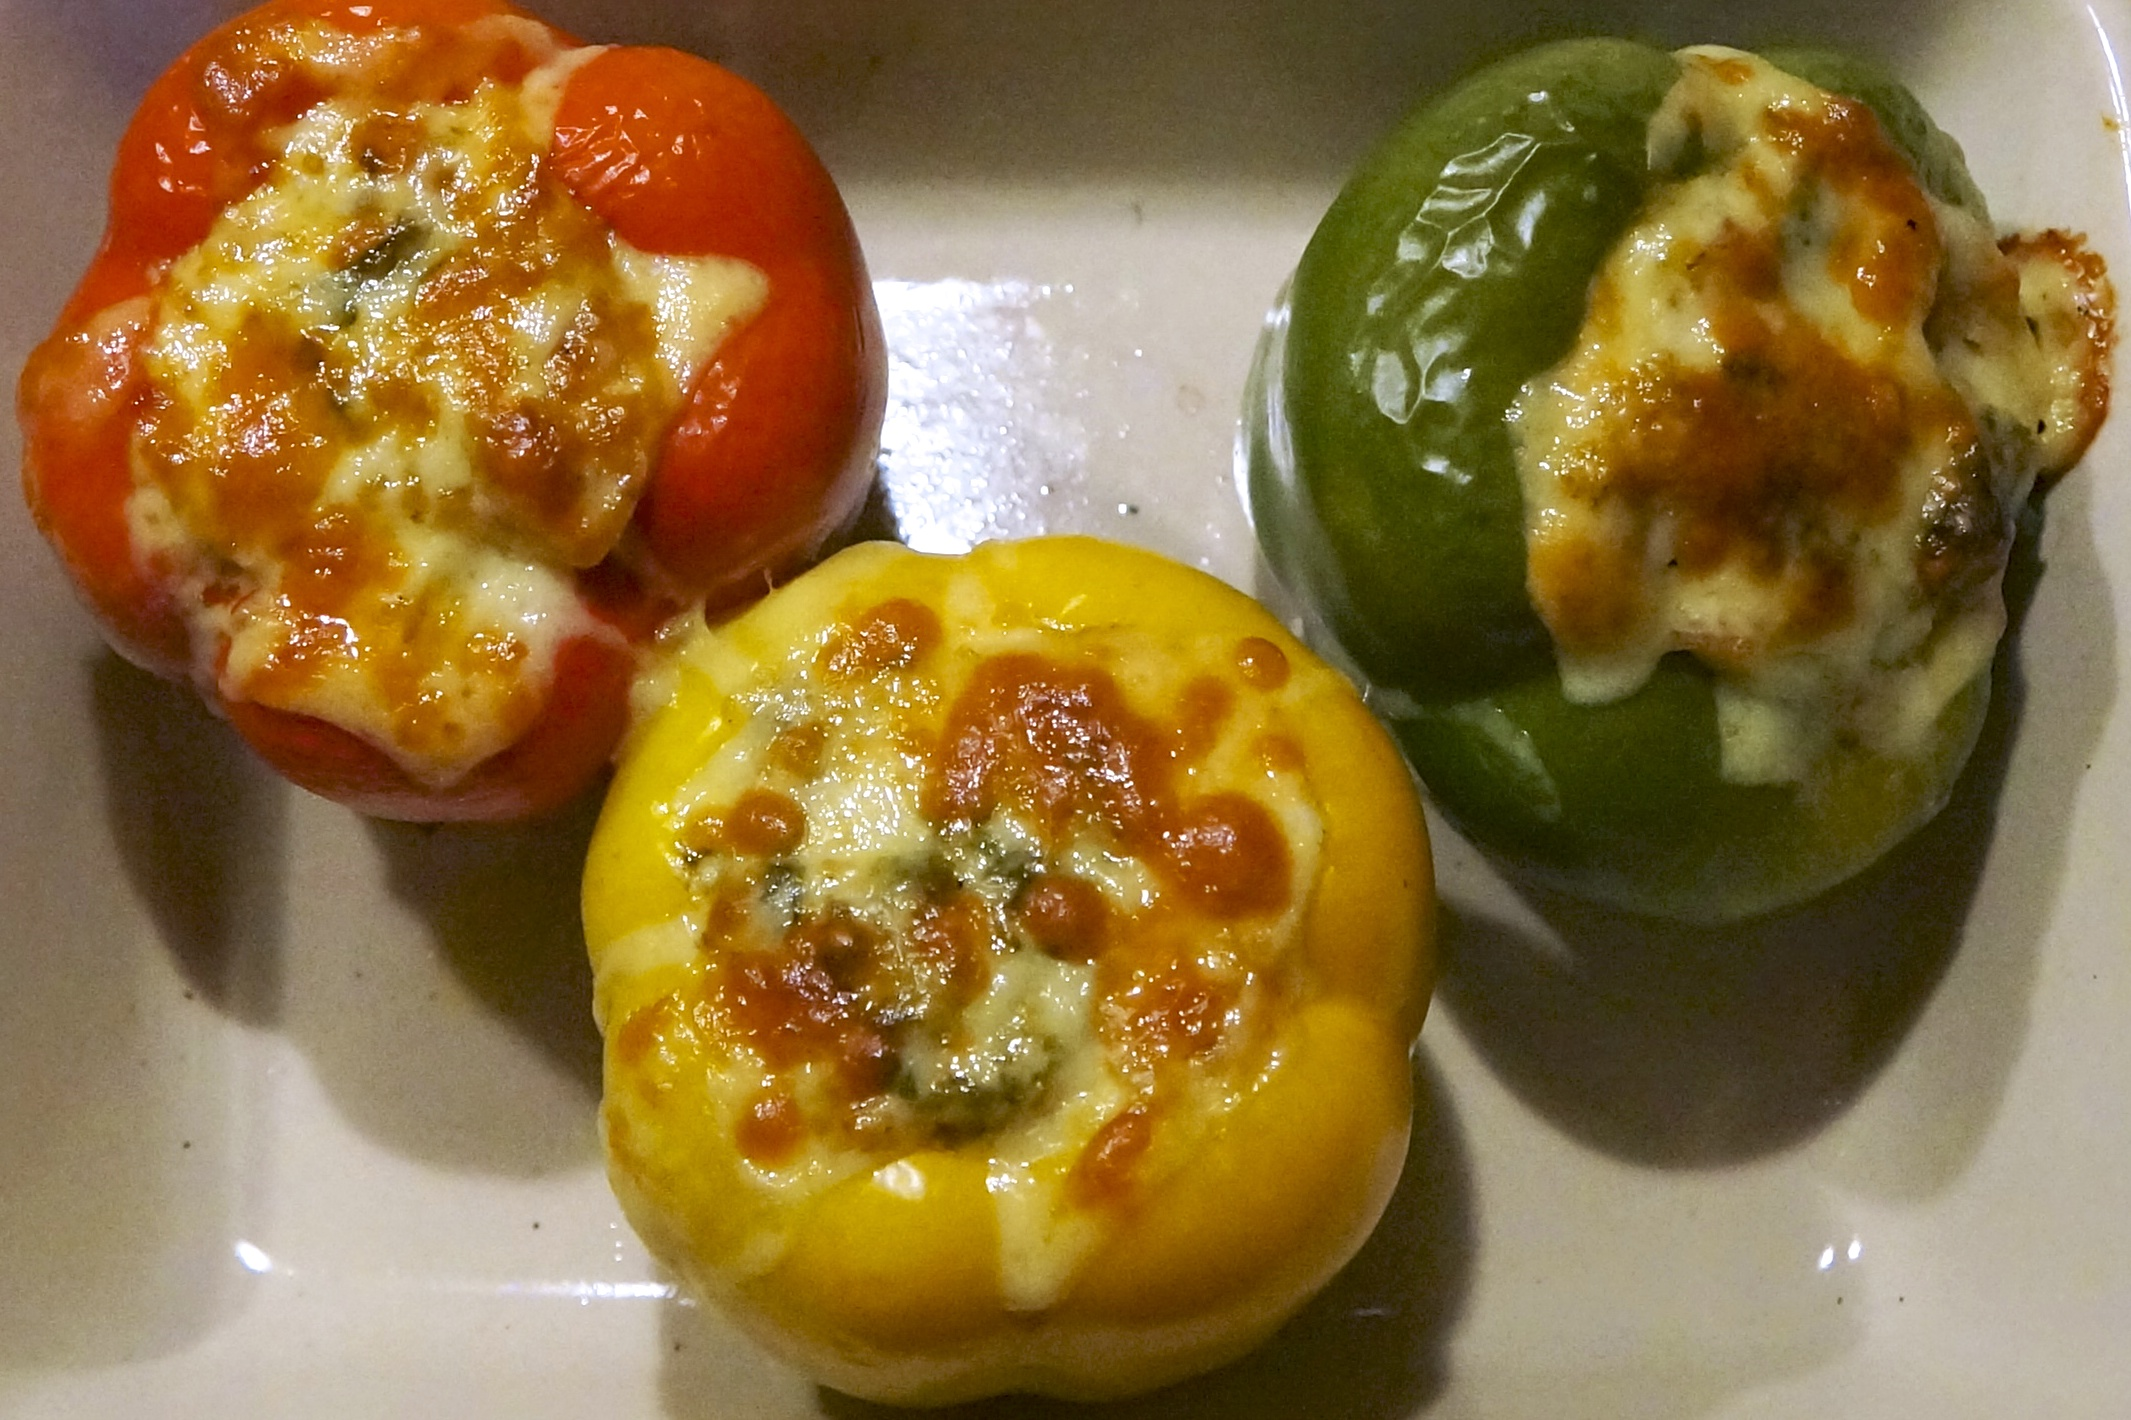 stuffed peppers with melted cheese